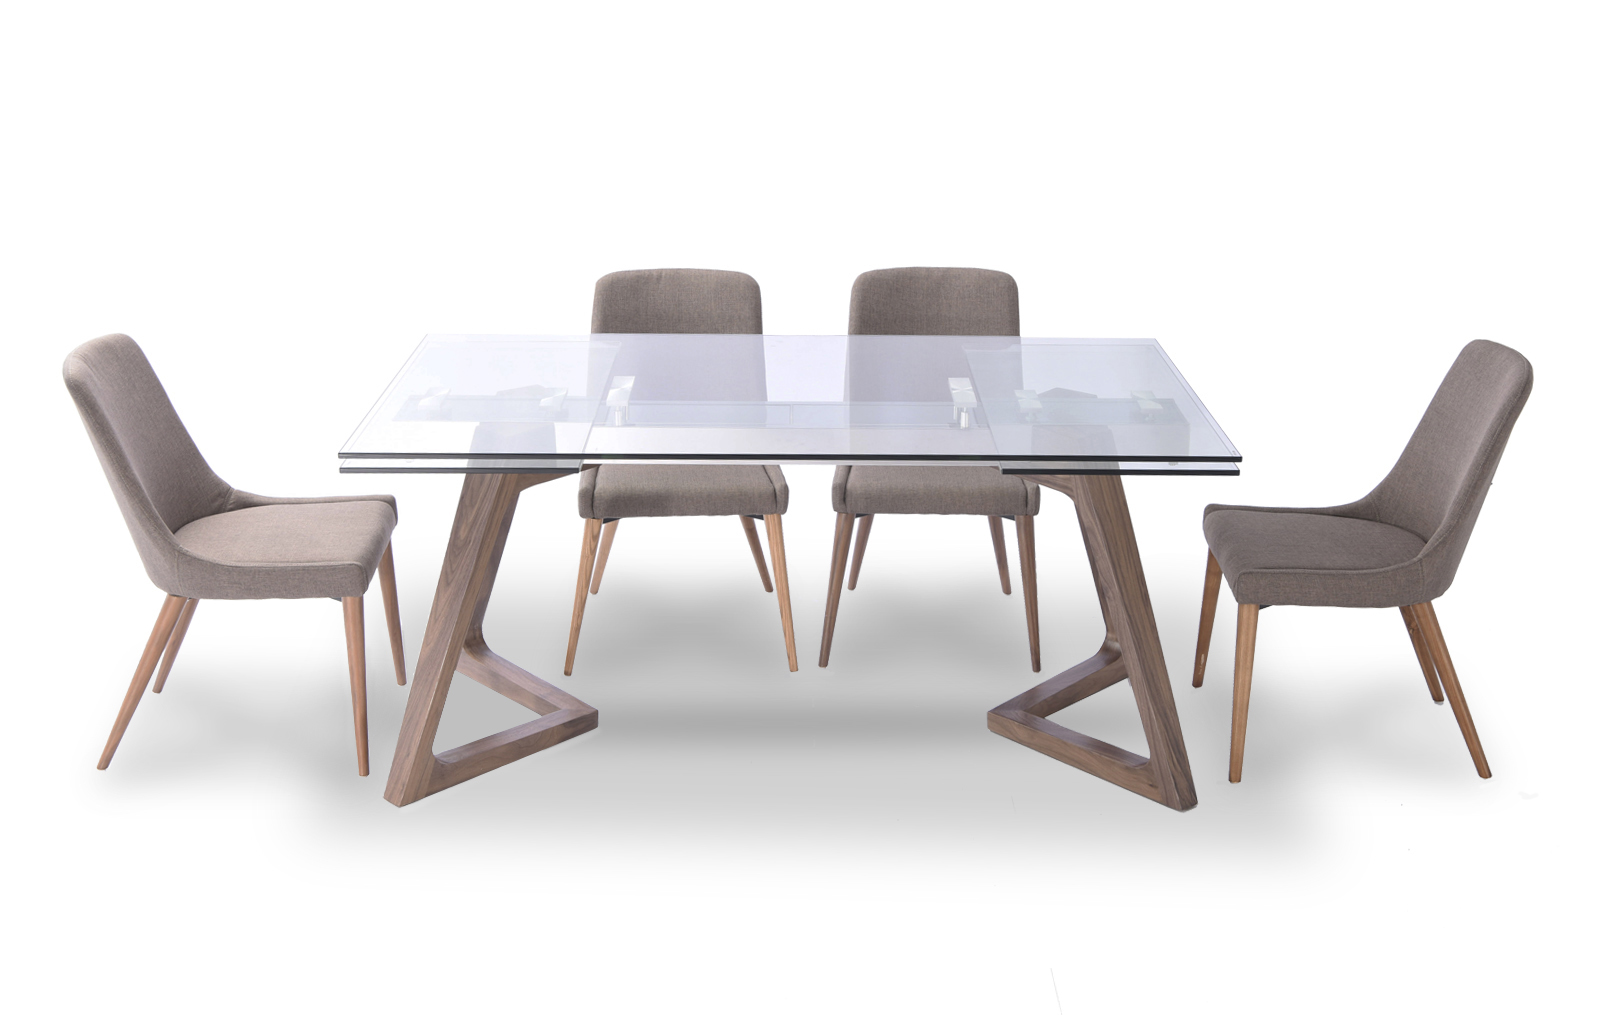 100 Poker Extension Dining Table Wenge Maria Table Dt01  : Dining Room FurnitureModern Dining Sets8811 Table and 941 Chairsside9 from ubytovani-melnik.com size 1600 x 1015 jpeg 375kB